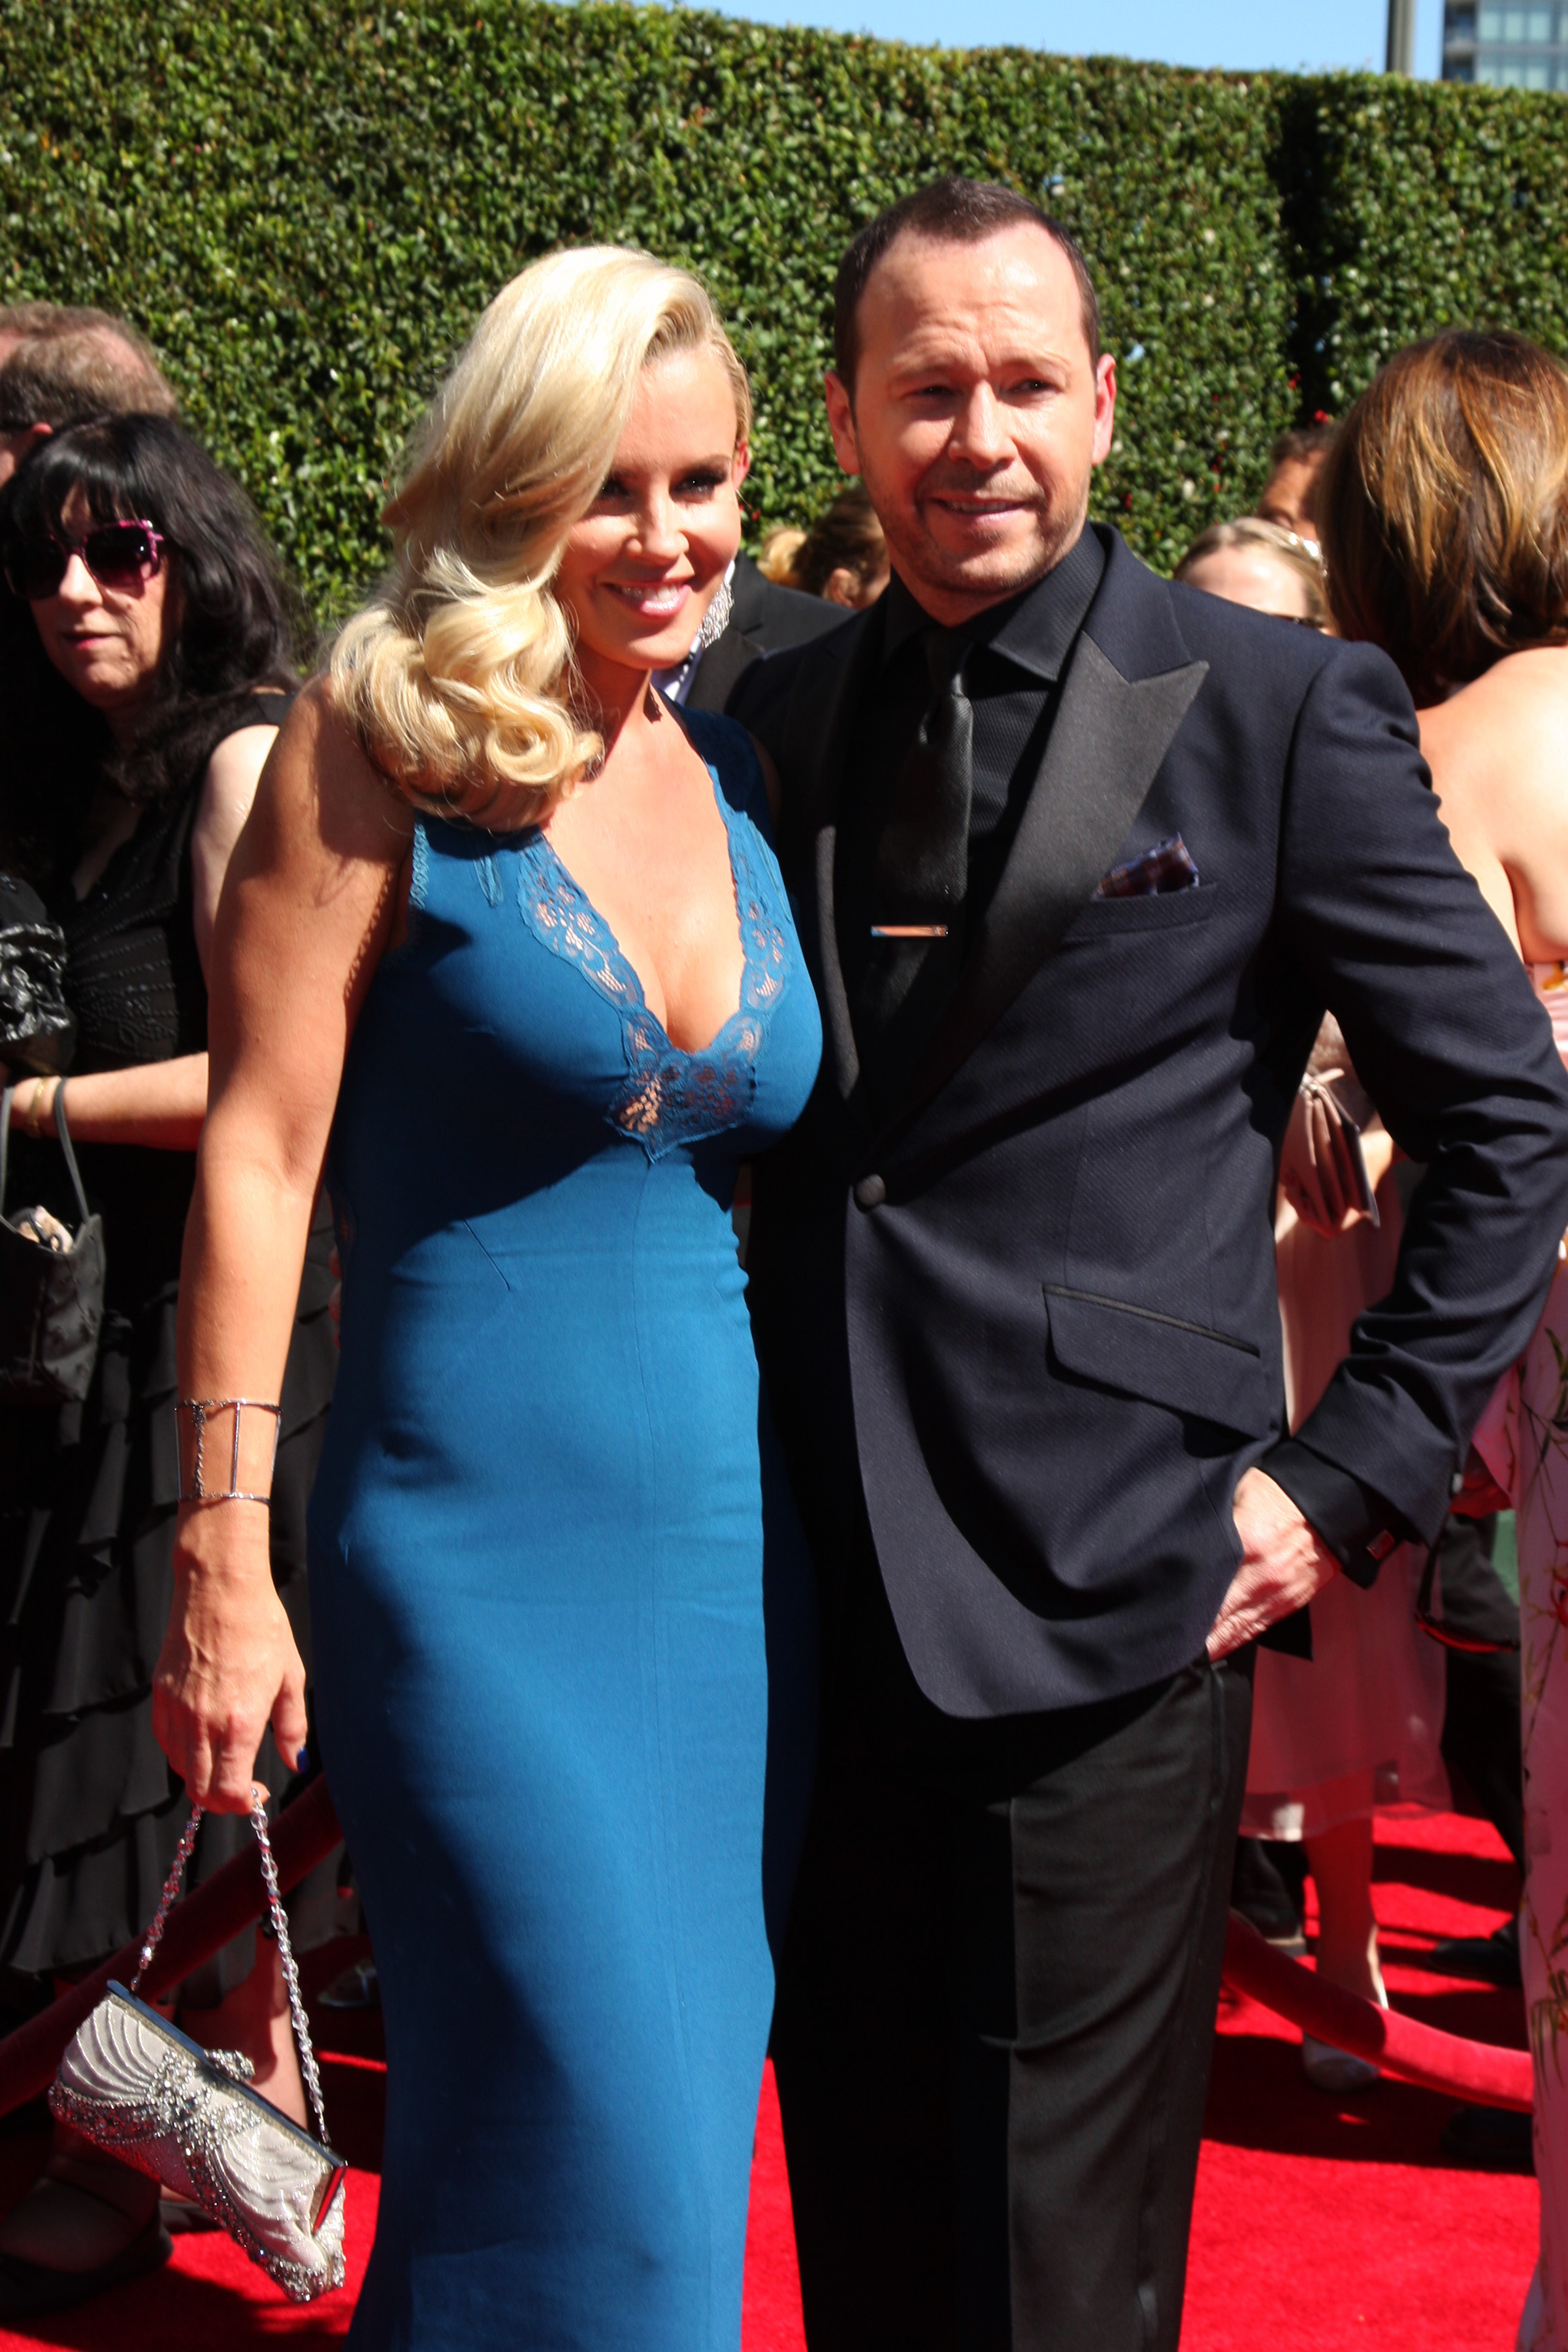 Jenny McCarthy and Donnie Wahlberg to appear in their own realty tv show